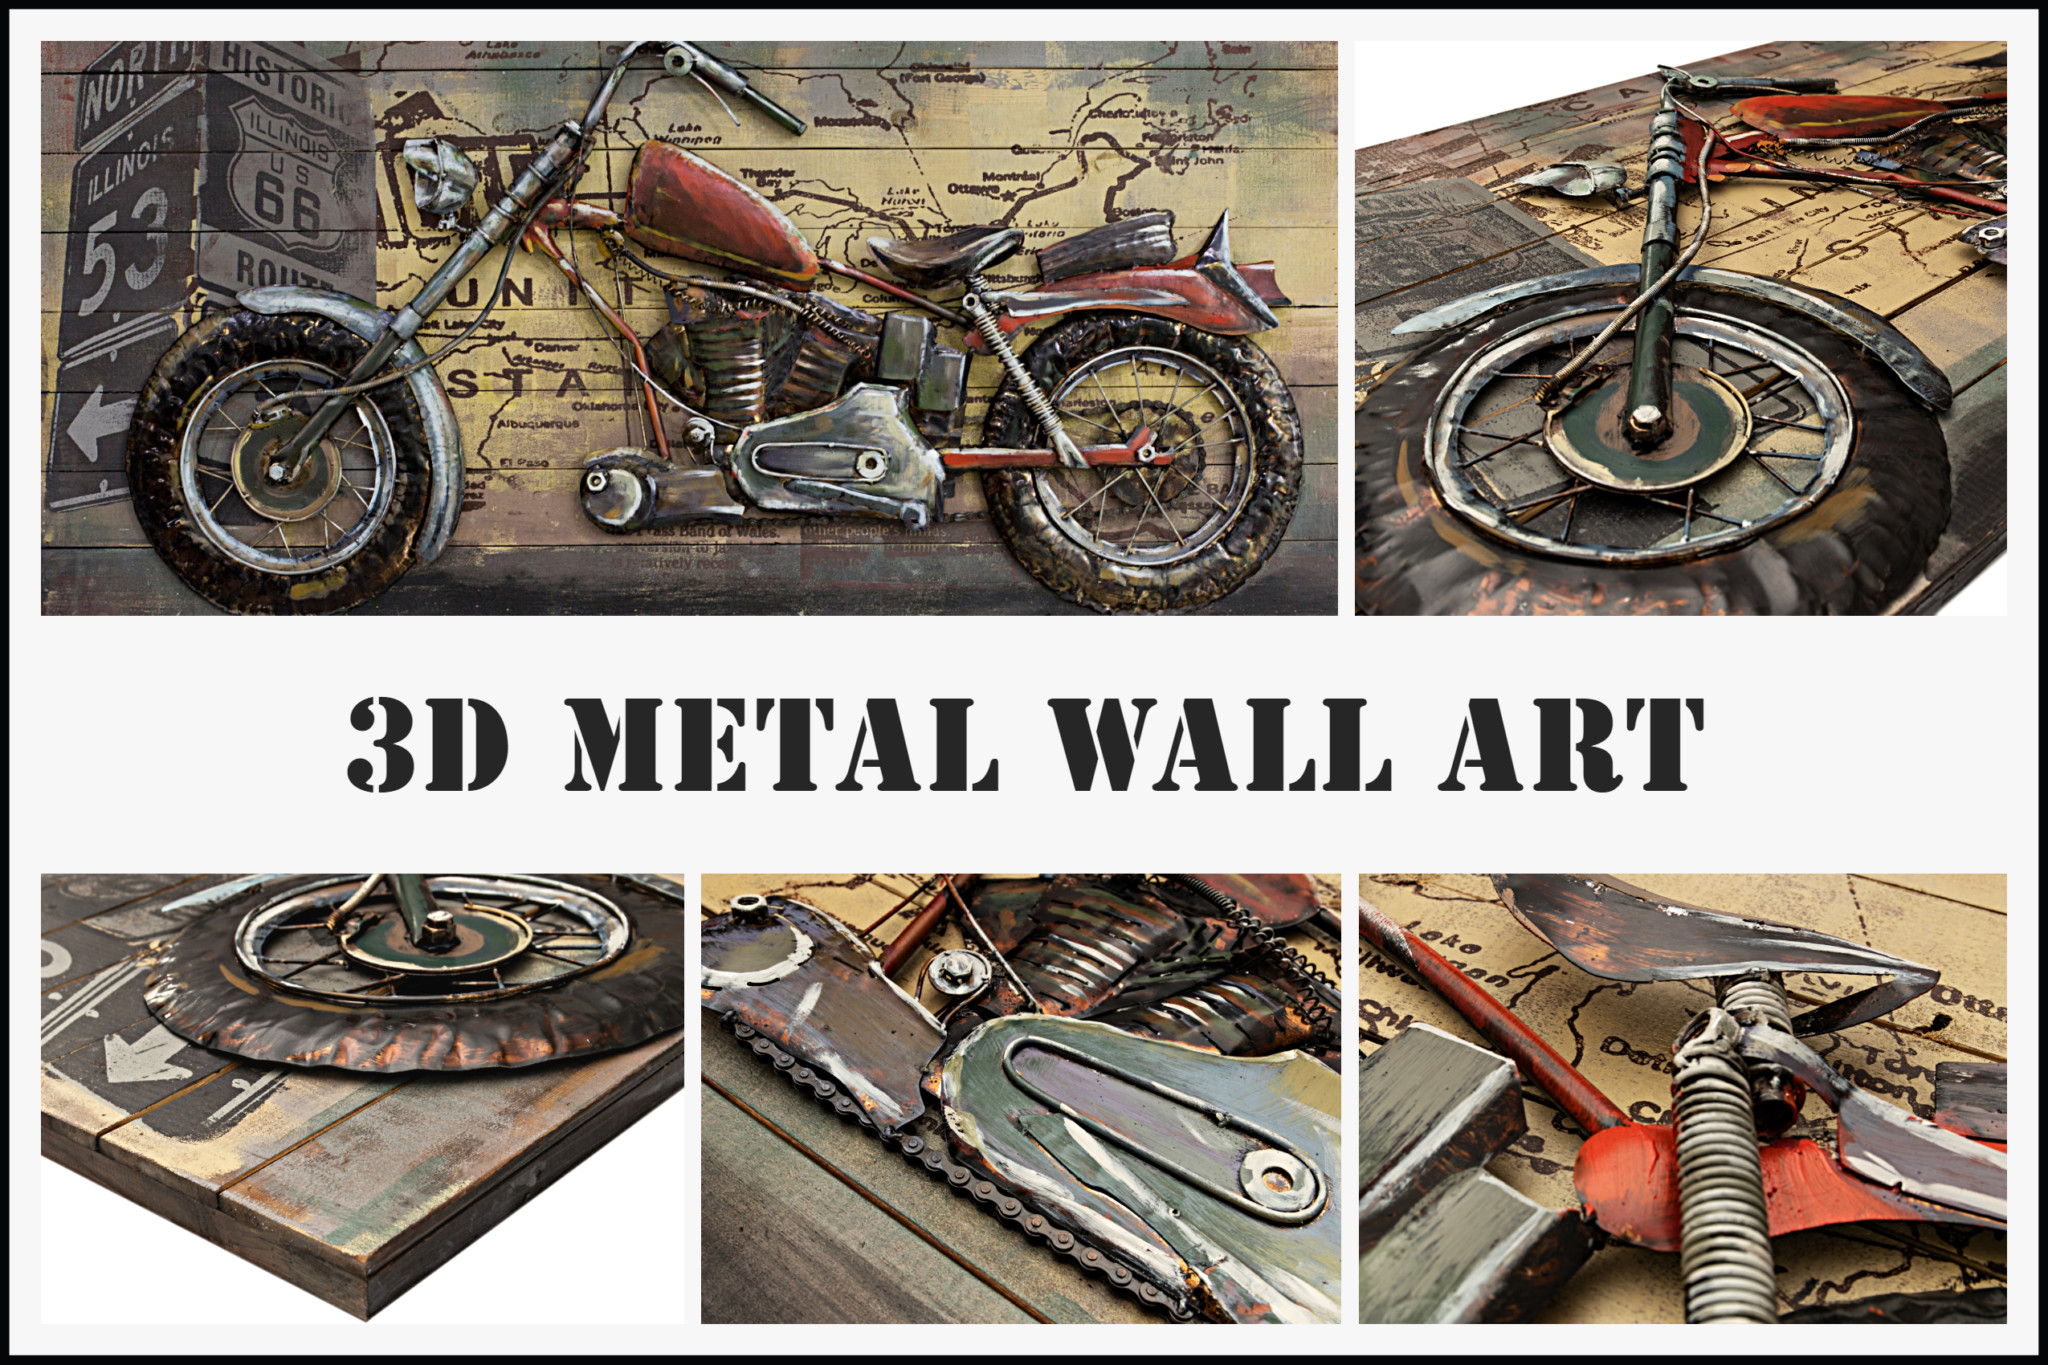 3D Metal Wall Art